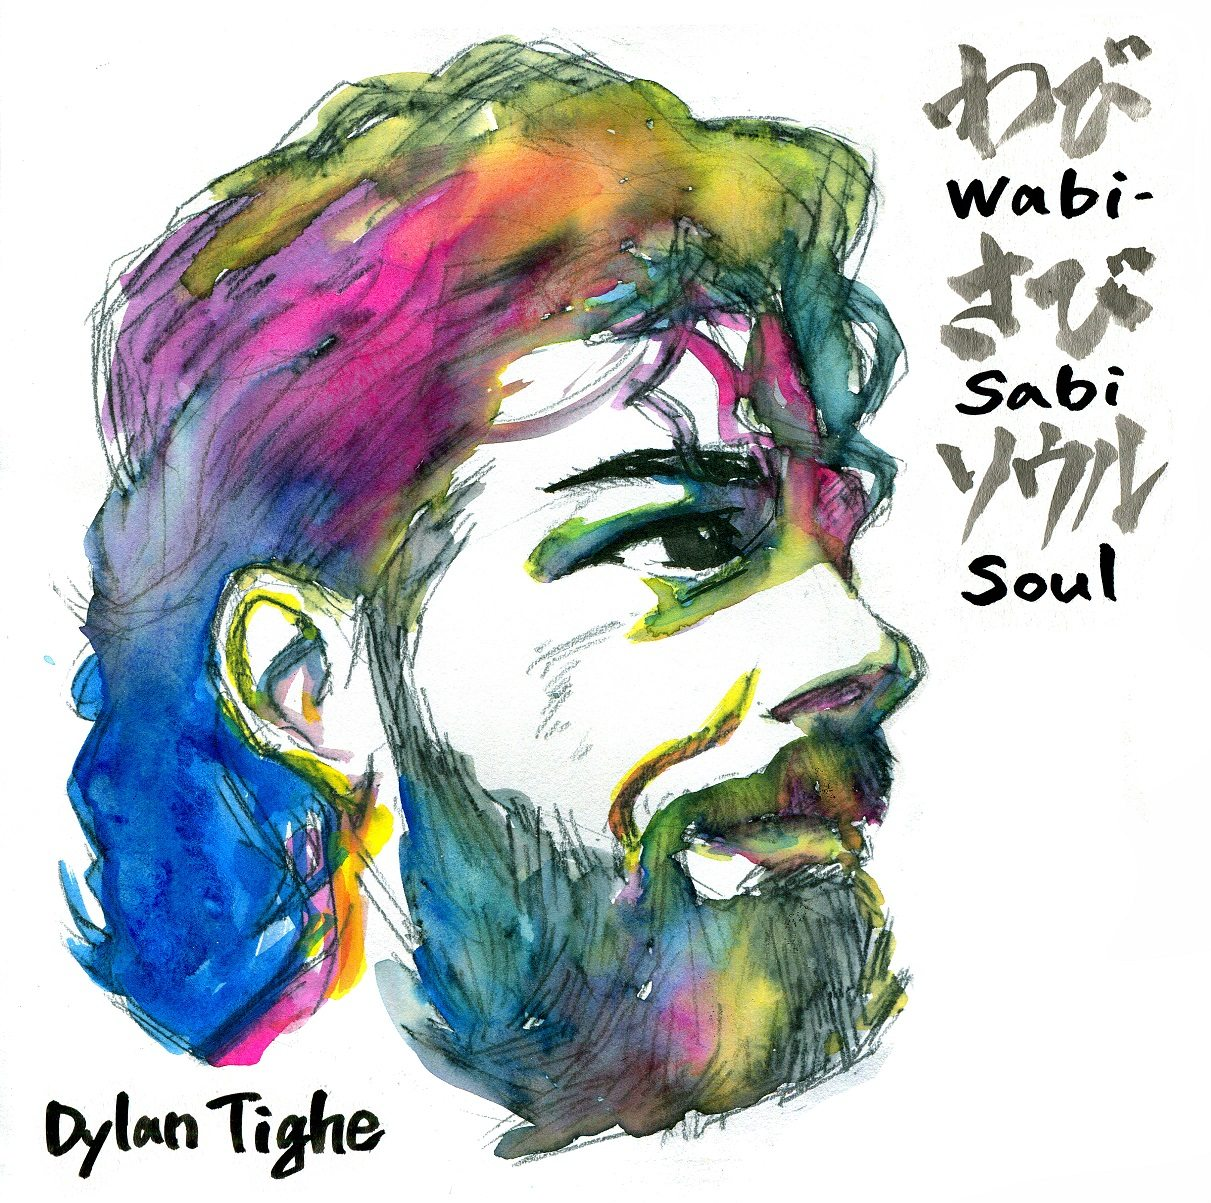 Dylan Tighe -WABI_SABI SOUL COVER ART - credit - artwork- Shota Kotake -